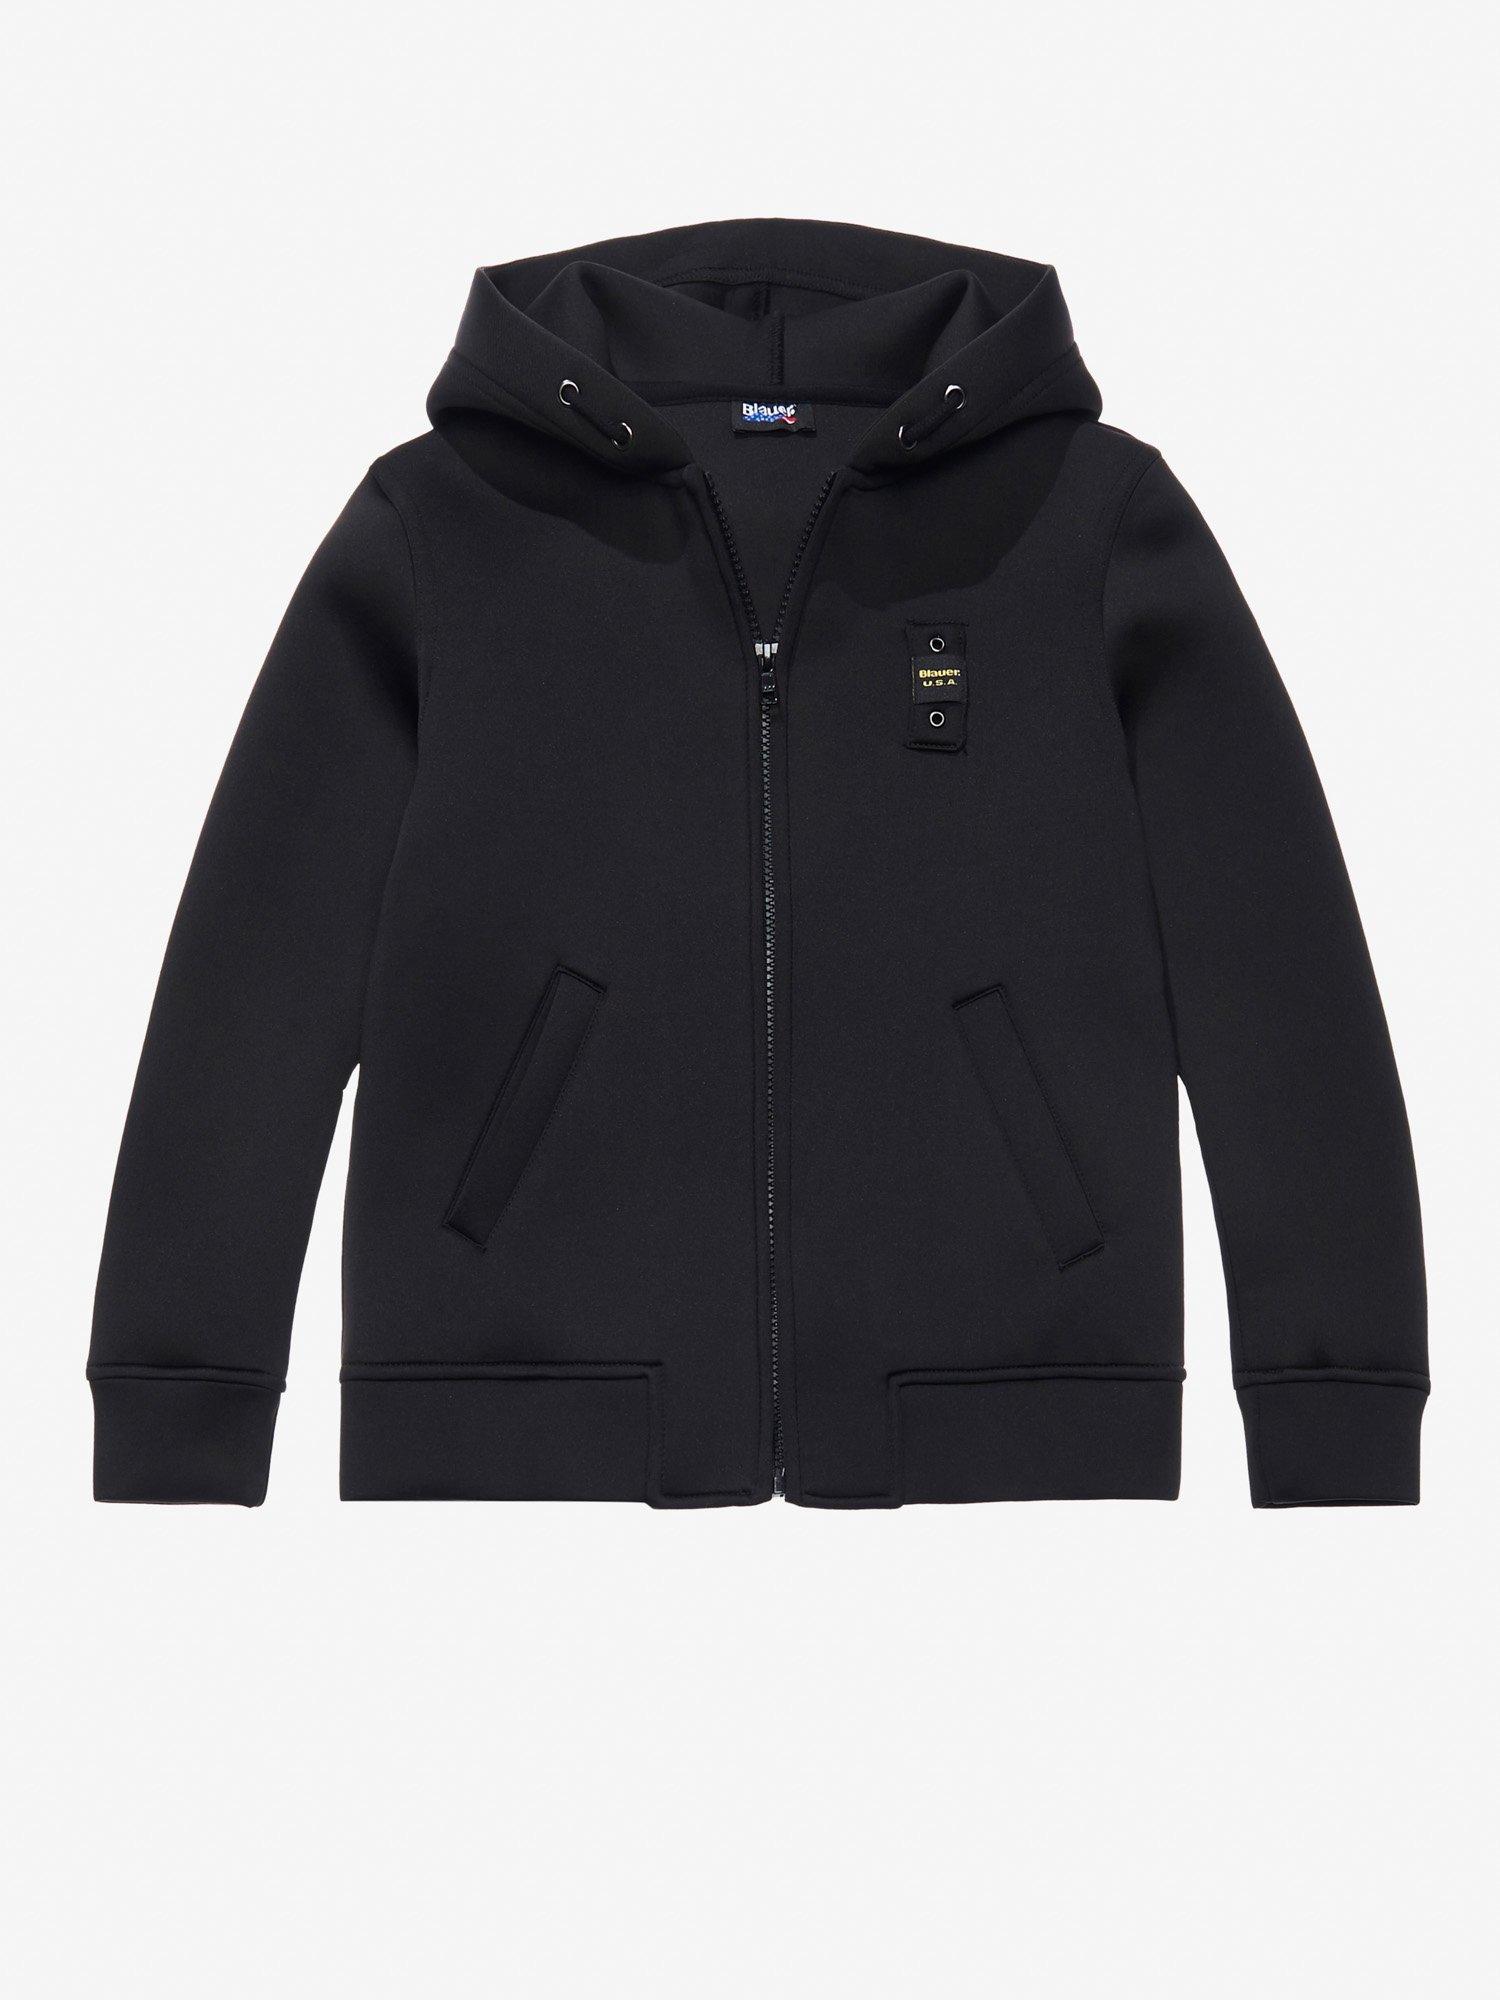 NEOPRENE HOODED SWEATSHIRT - Blauer